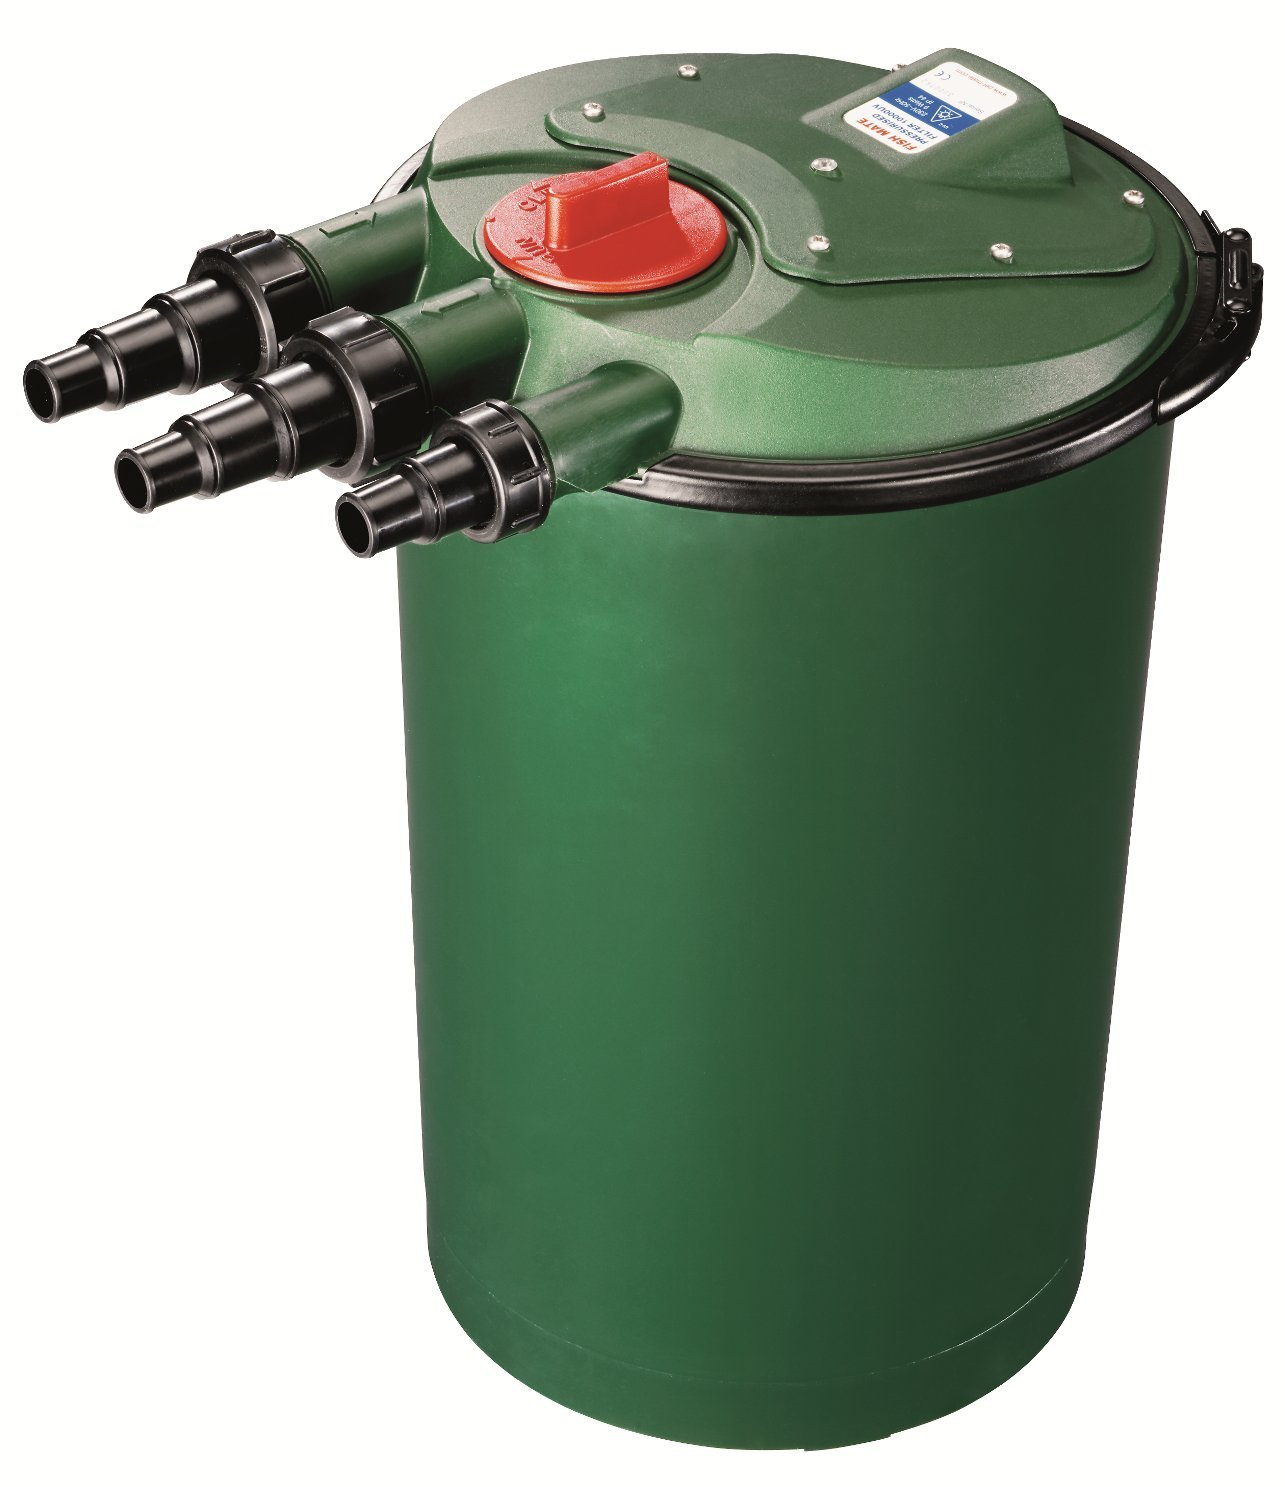 Fish Mate 3000 Pressurized Bio Pond Filter by Fish Mate